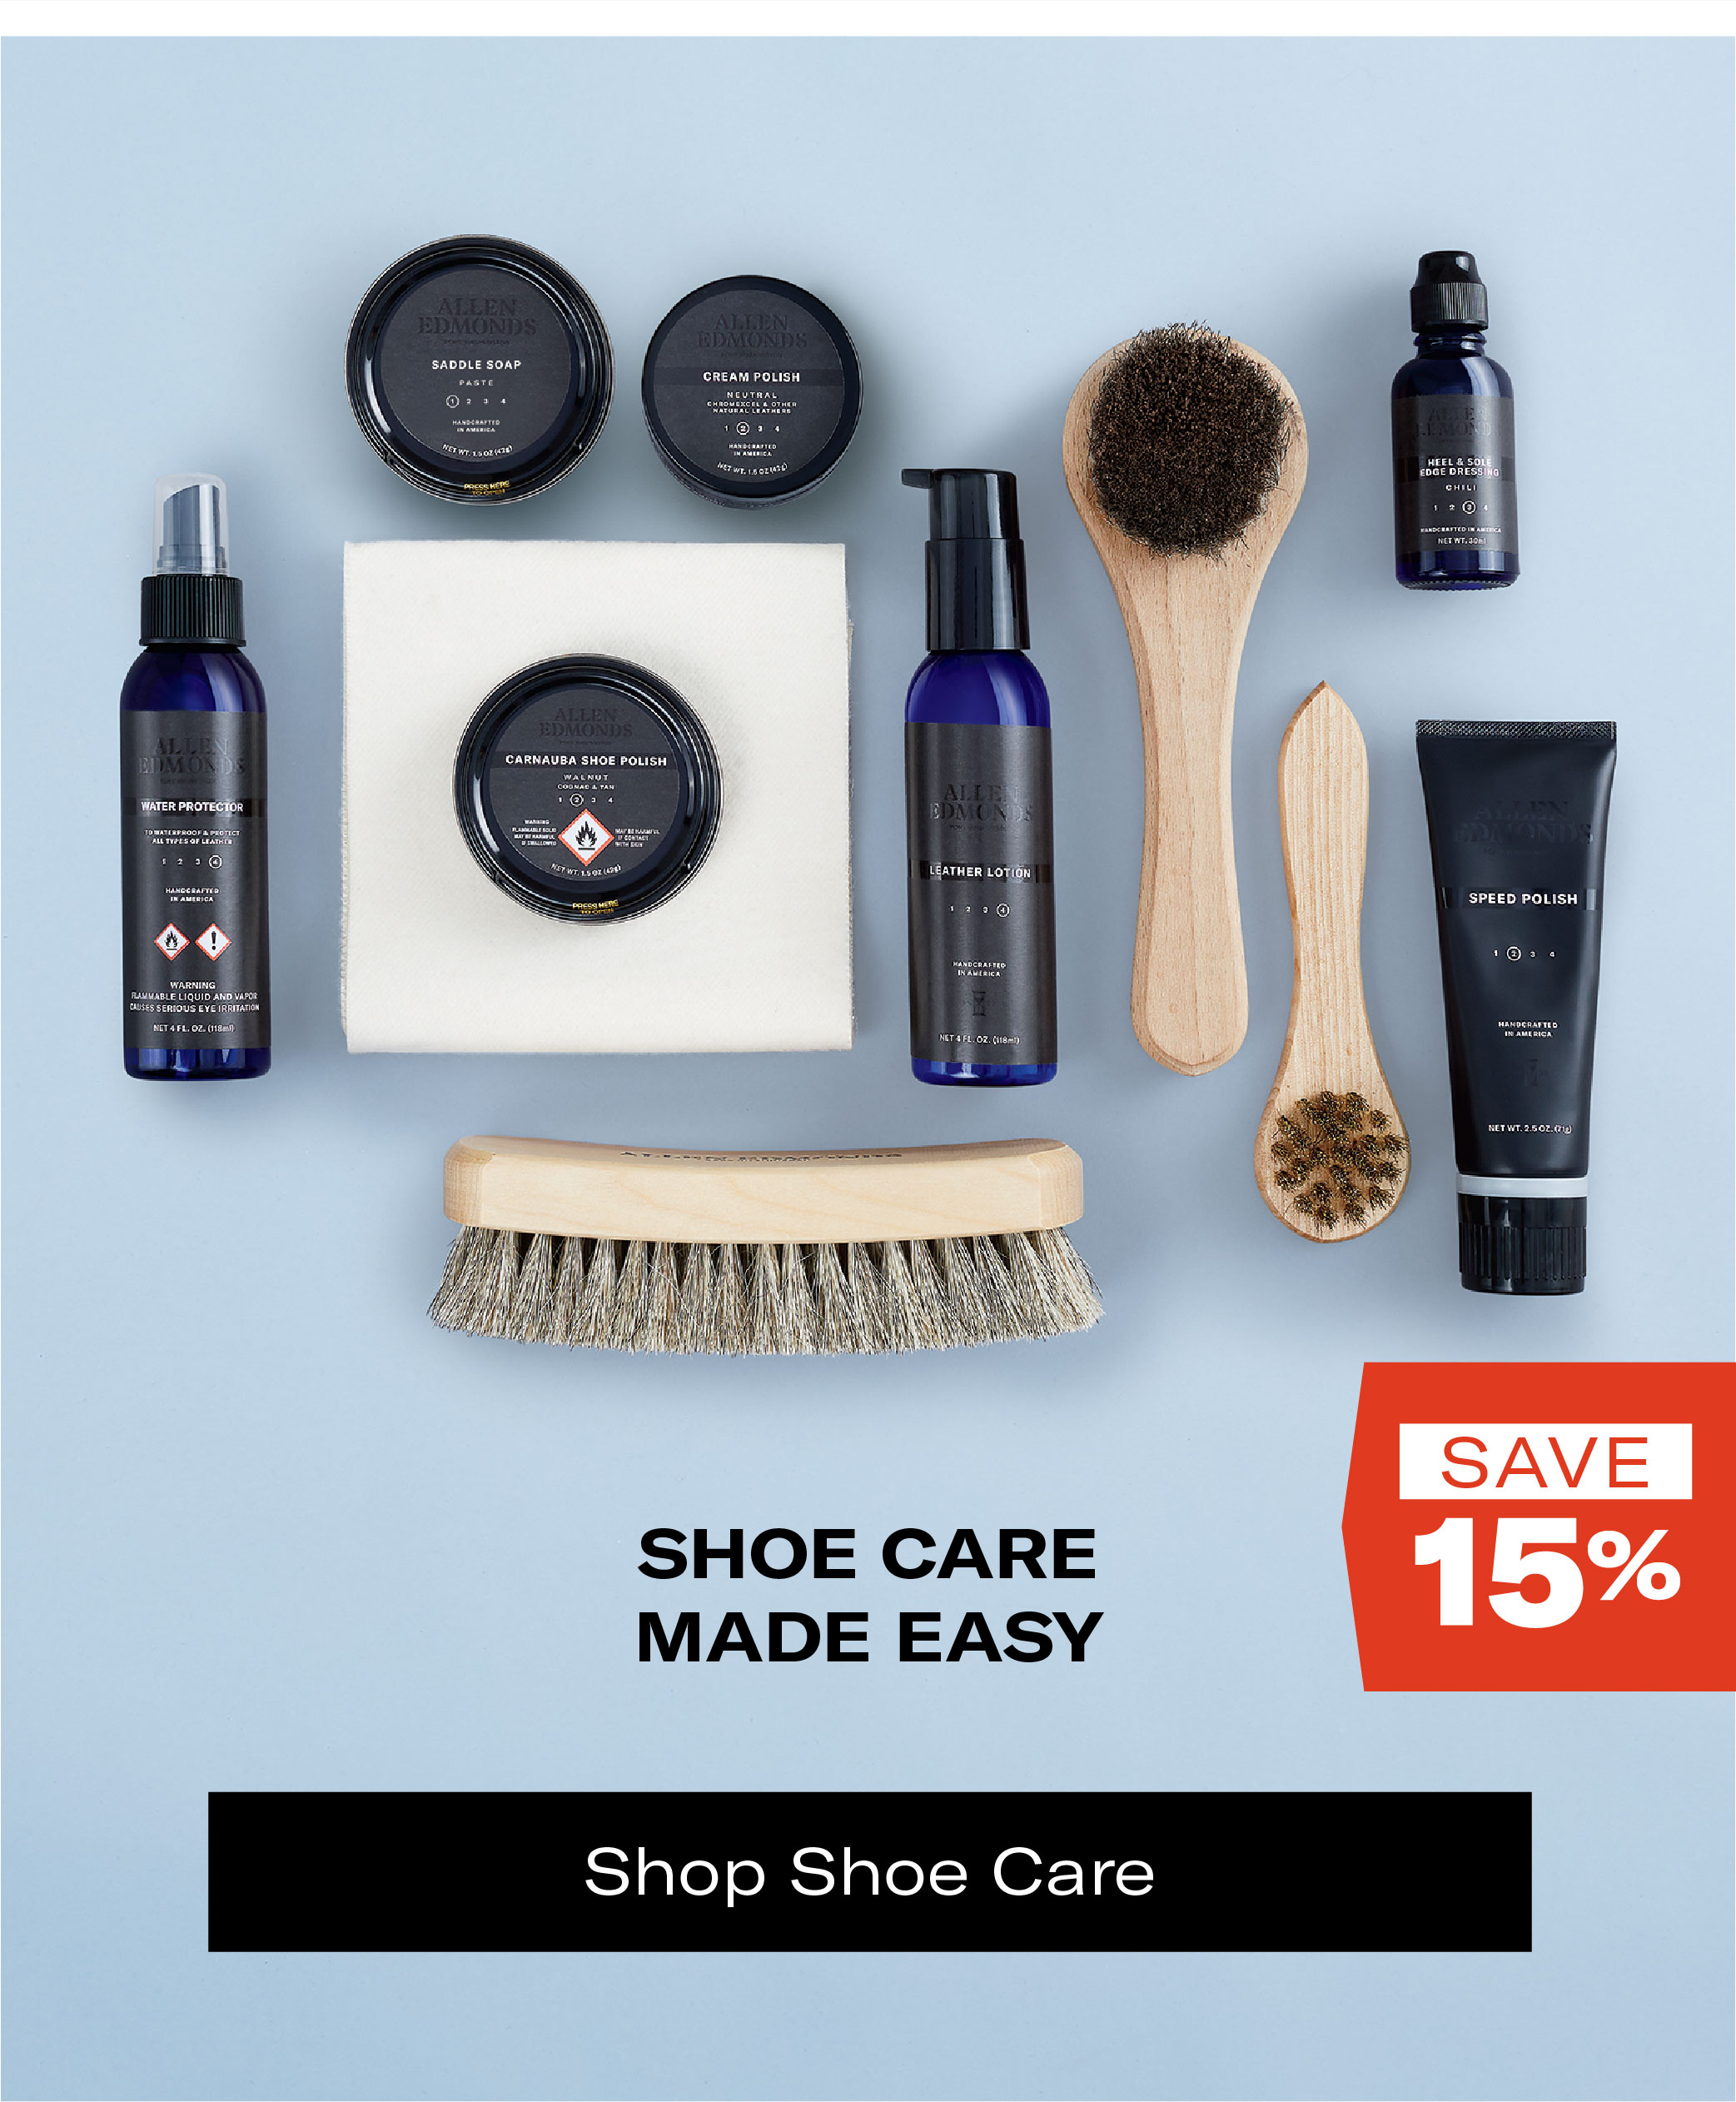 Save 15% on Shoe Care